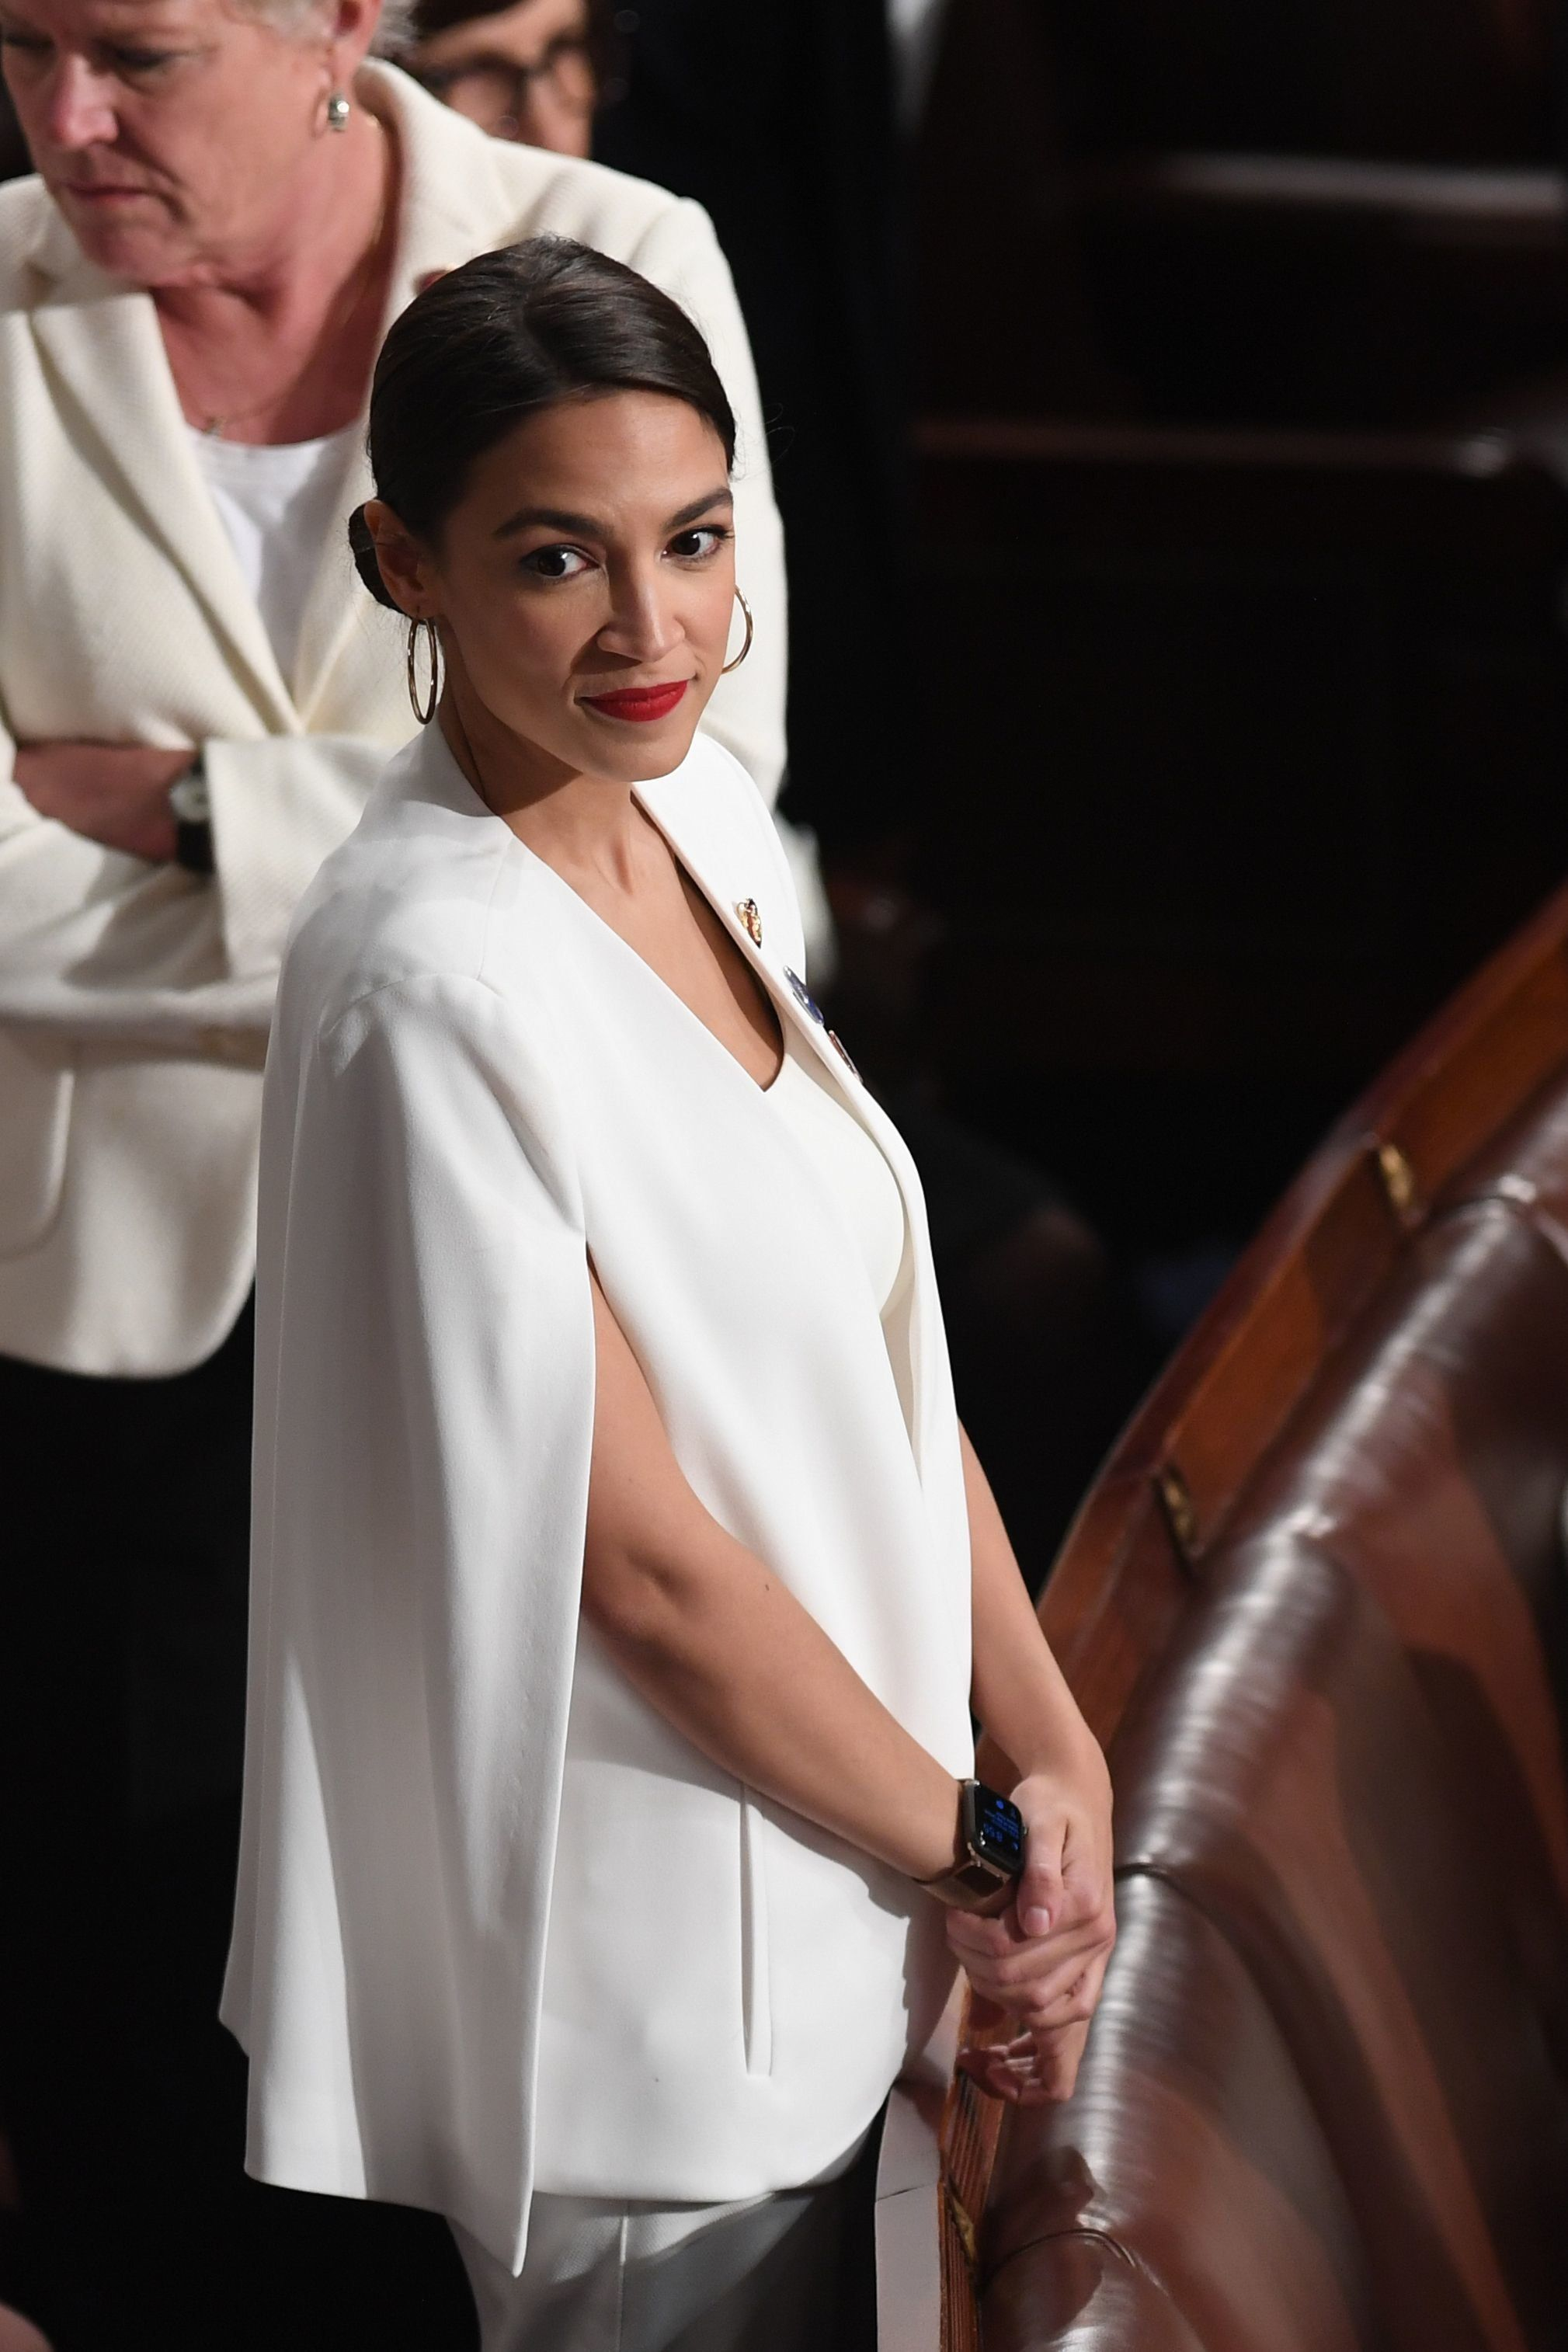 US Representative Alexandria Ocasio-Cortez (D-NY), dressed in white in tribute to the women's suffrage movement, arrives for the State of the Union address at the US Capitol in Washington, DC, on February 5, 2019. (Photo by SAUL LOEB / AFP)        (Photo credit should read SAUL LOEB/AFP/Getty Images)